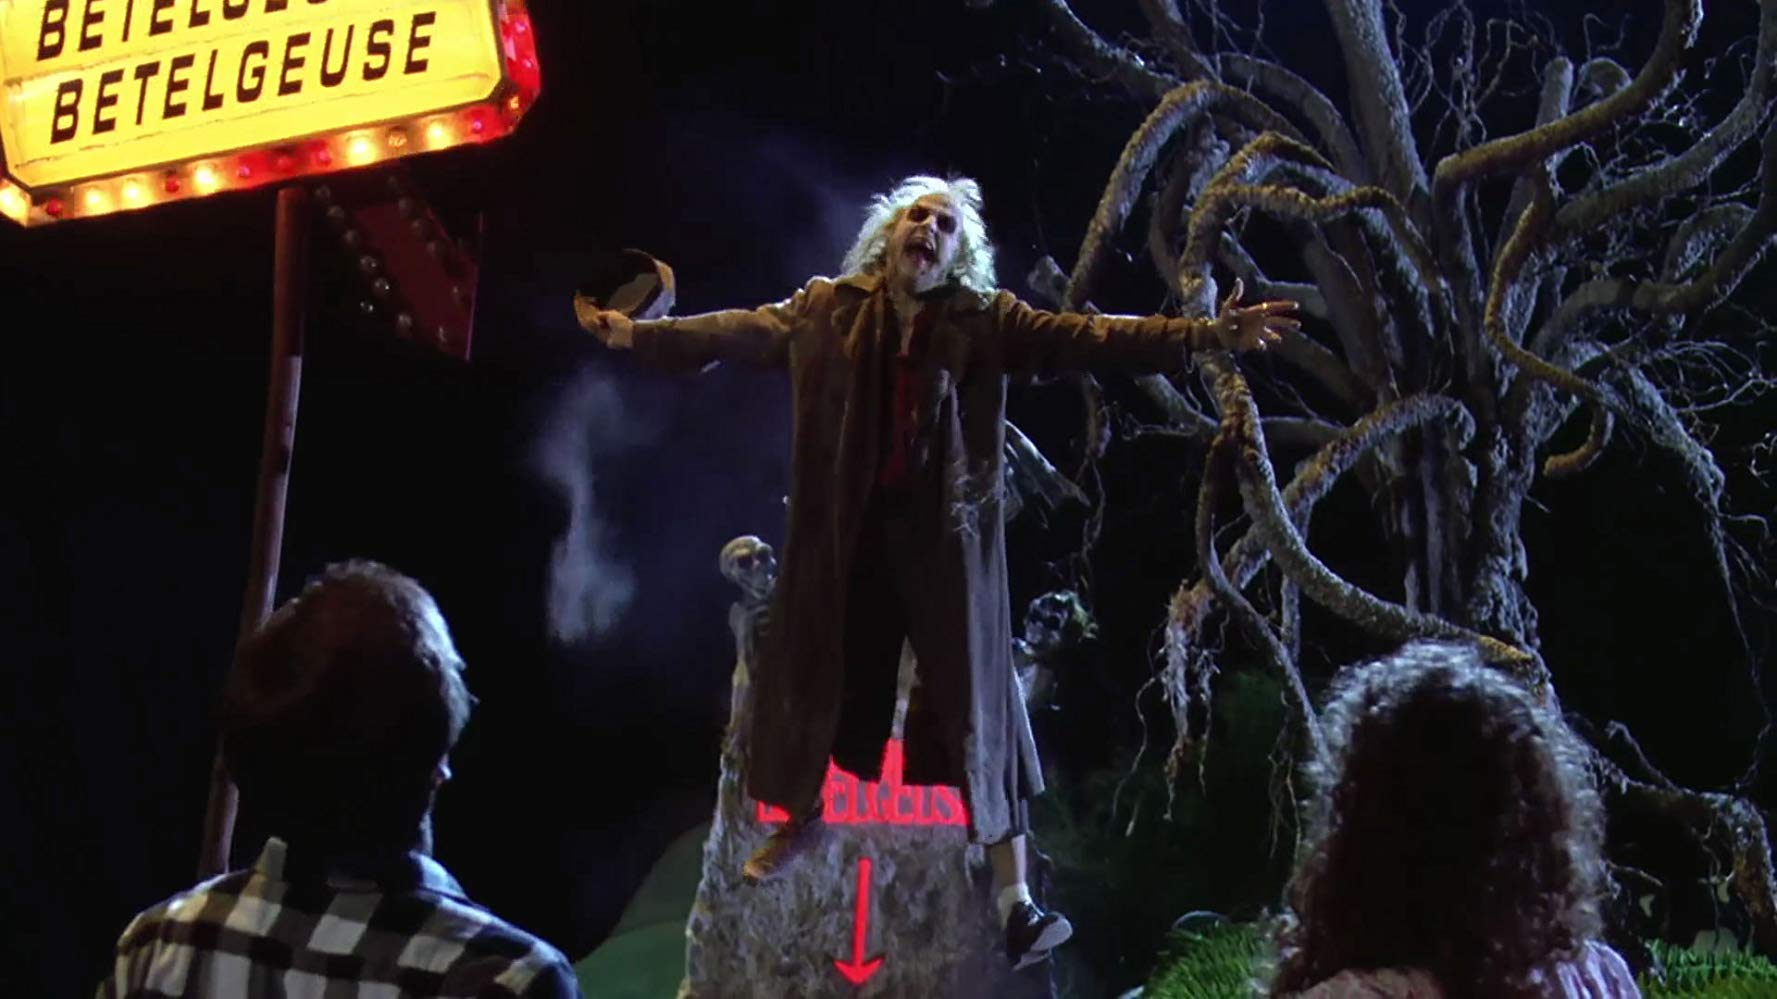 Beetlejuice 1988 3 12 Things You May Not Have Realised About Beetlejuice